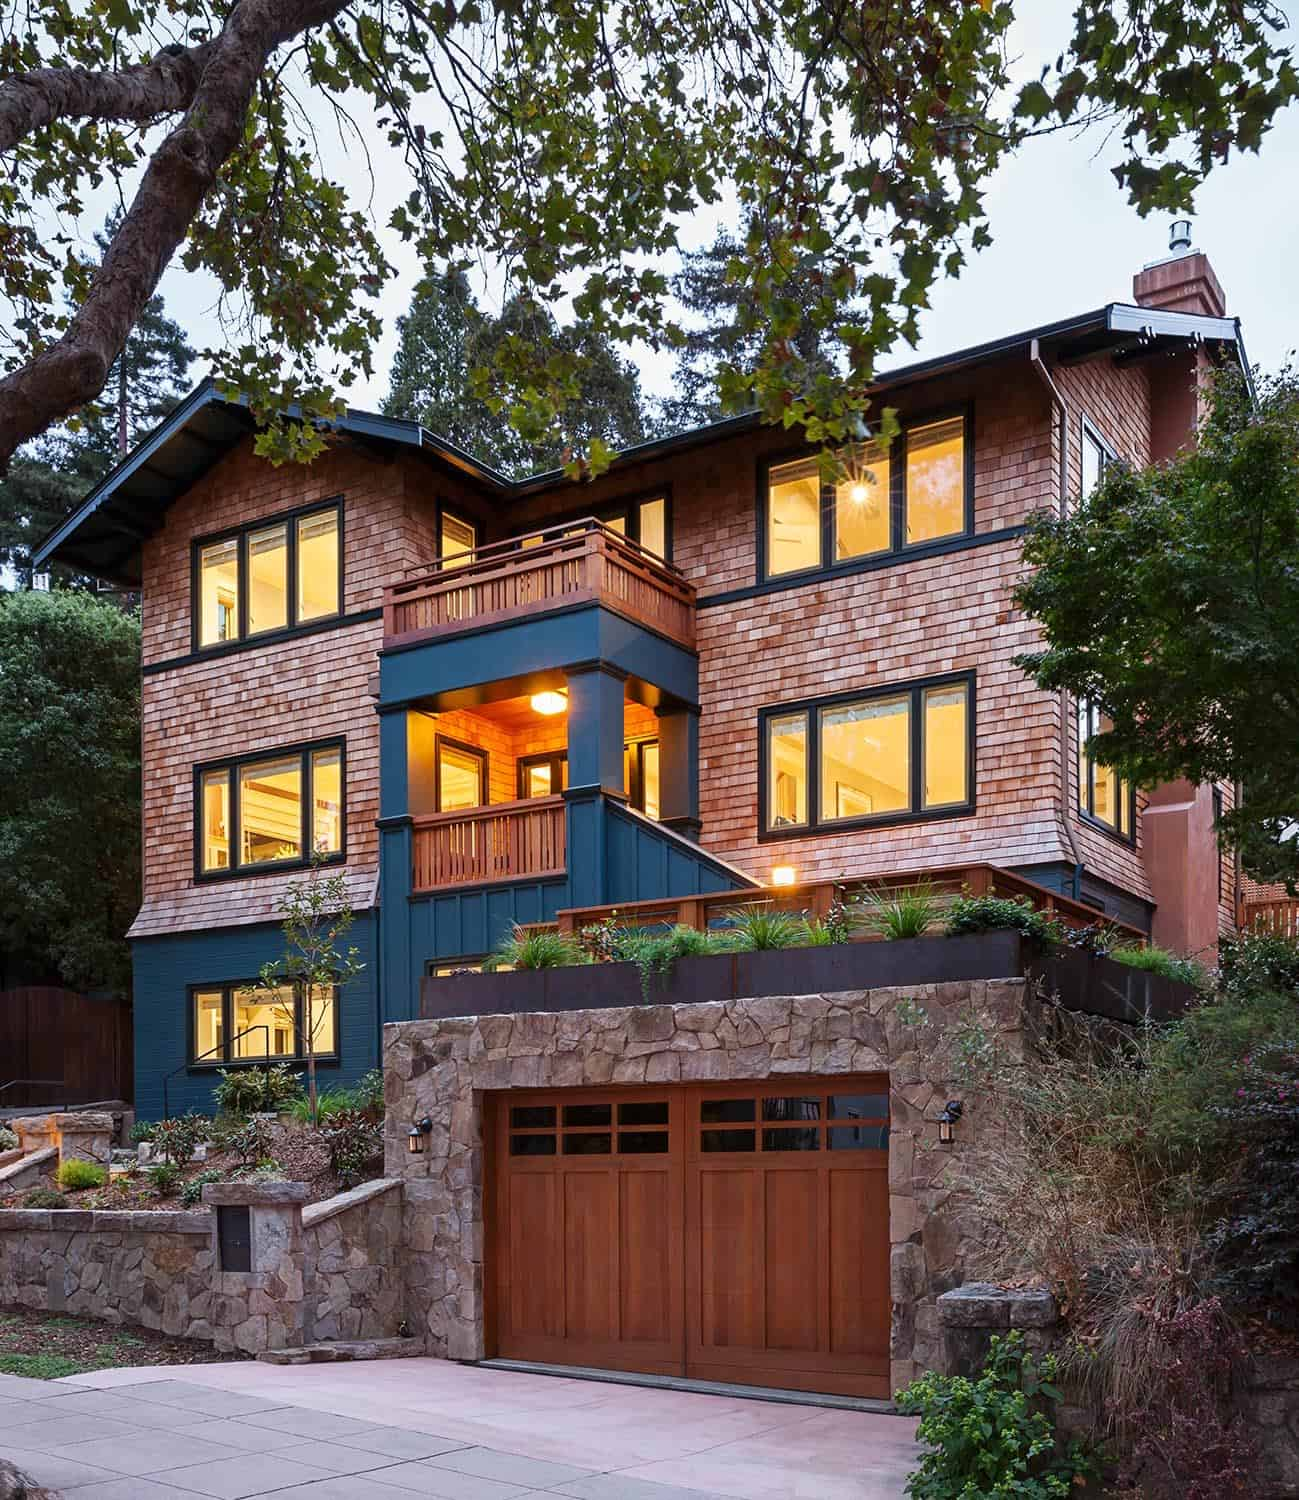 Beautiful update to a modern craftsman style home in Northern California